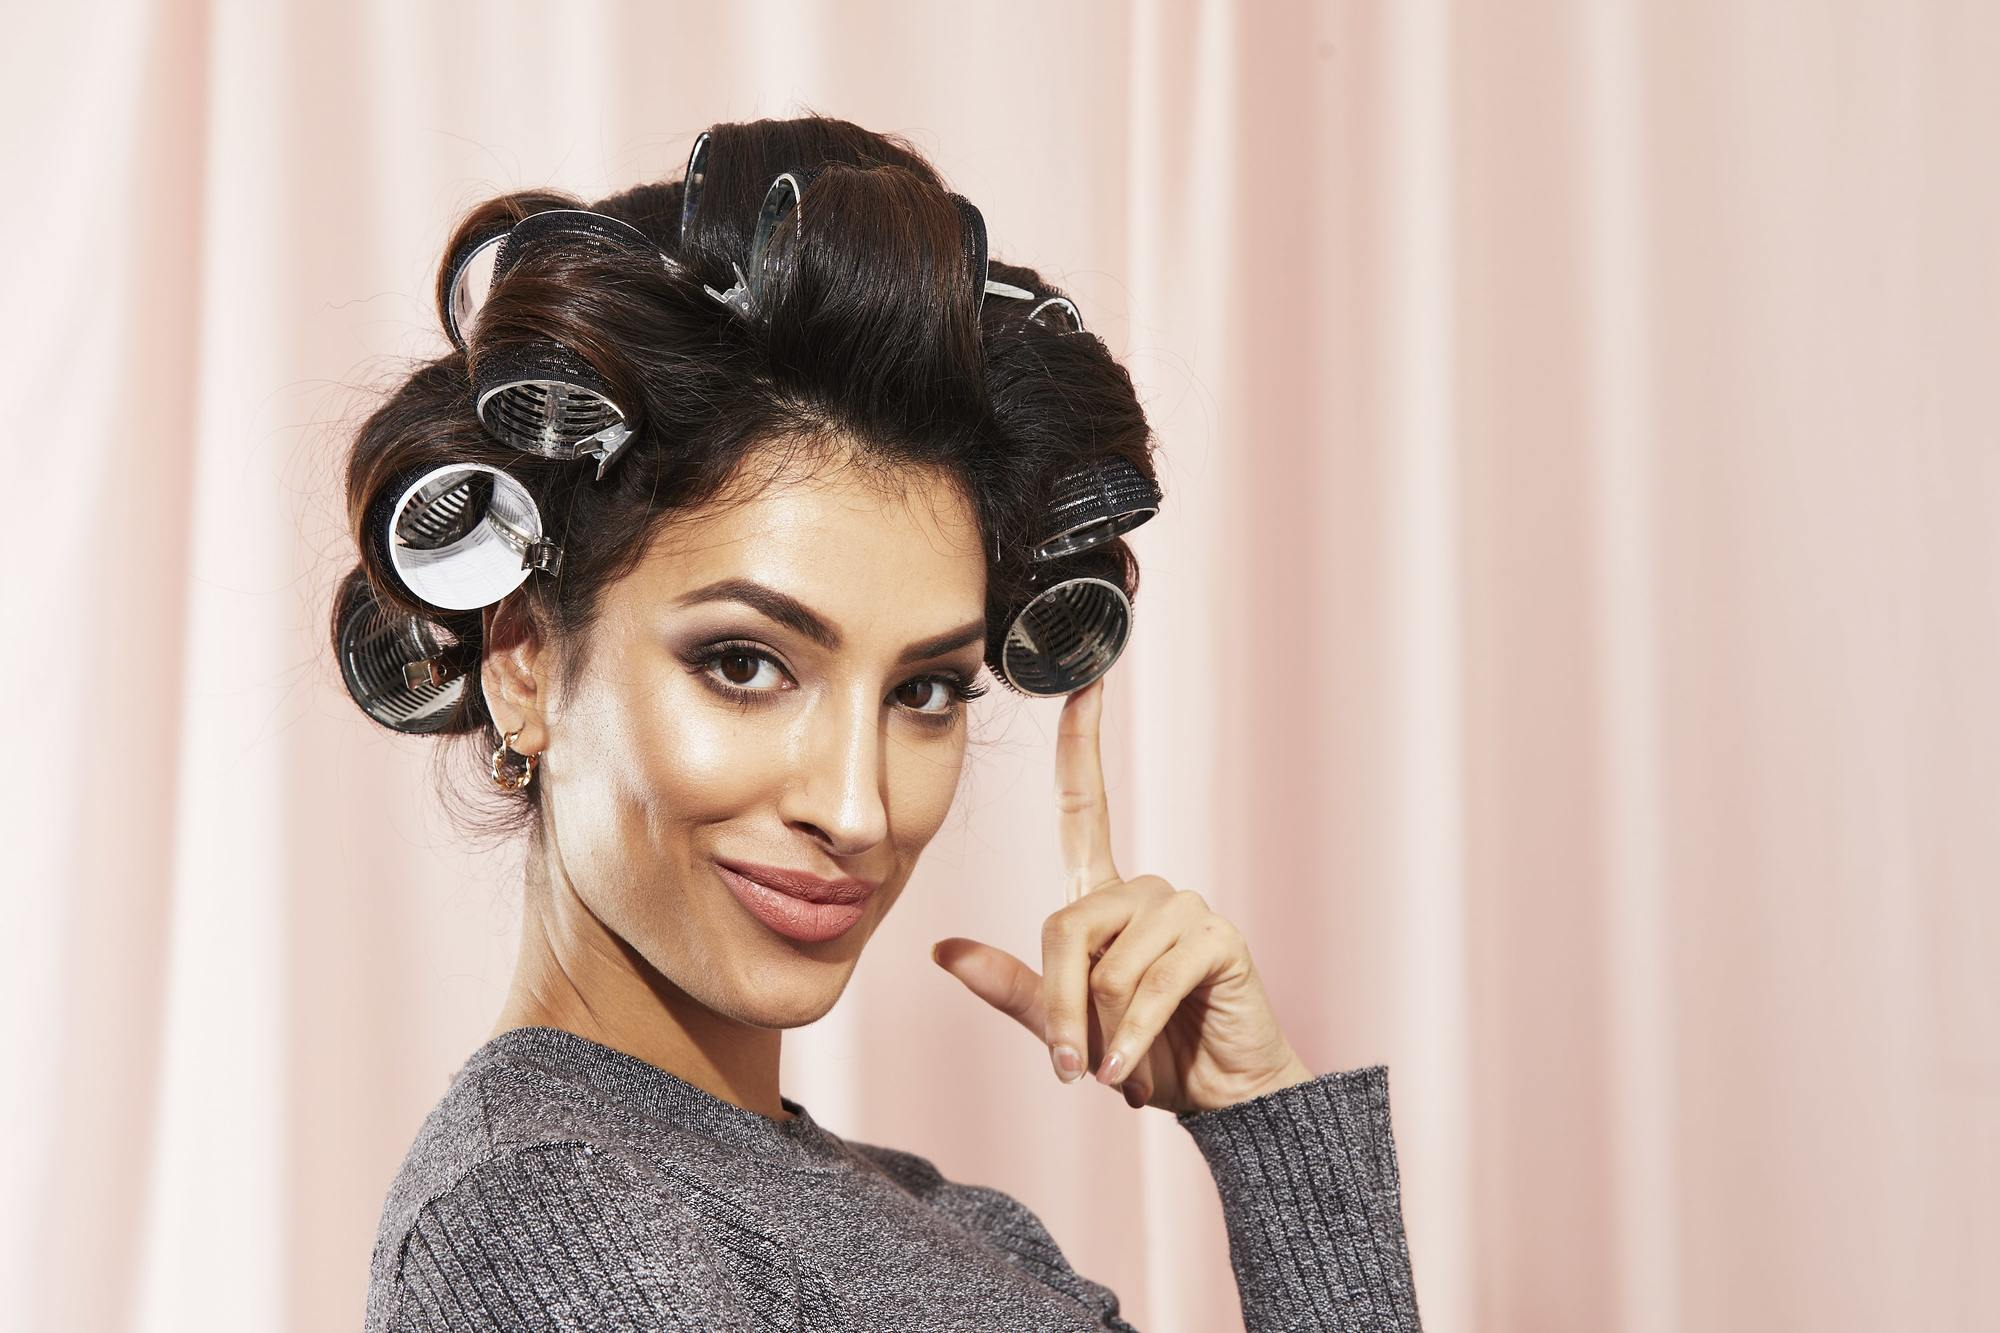 Hair Rollers 9 Best Types For All Hair Types In 2020